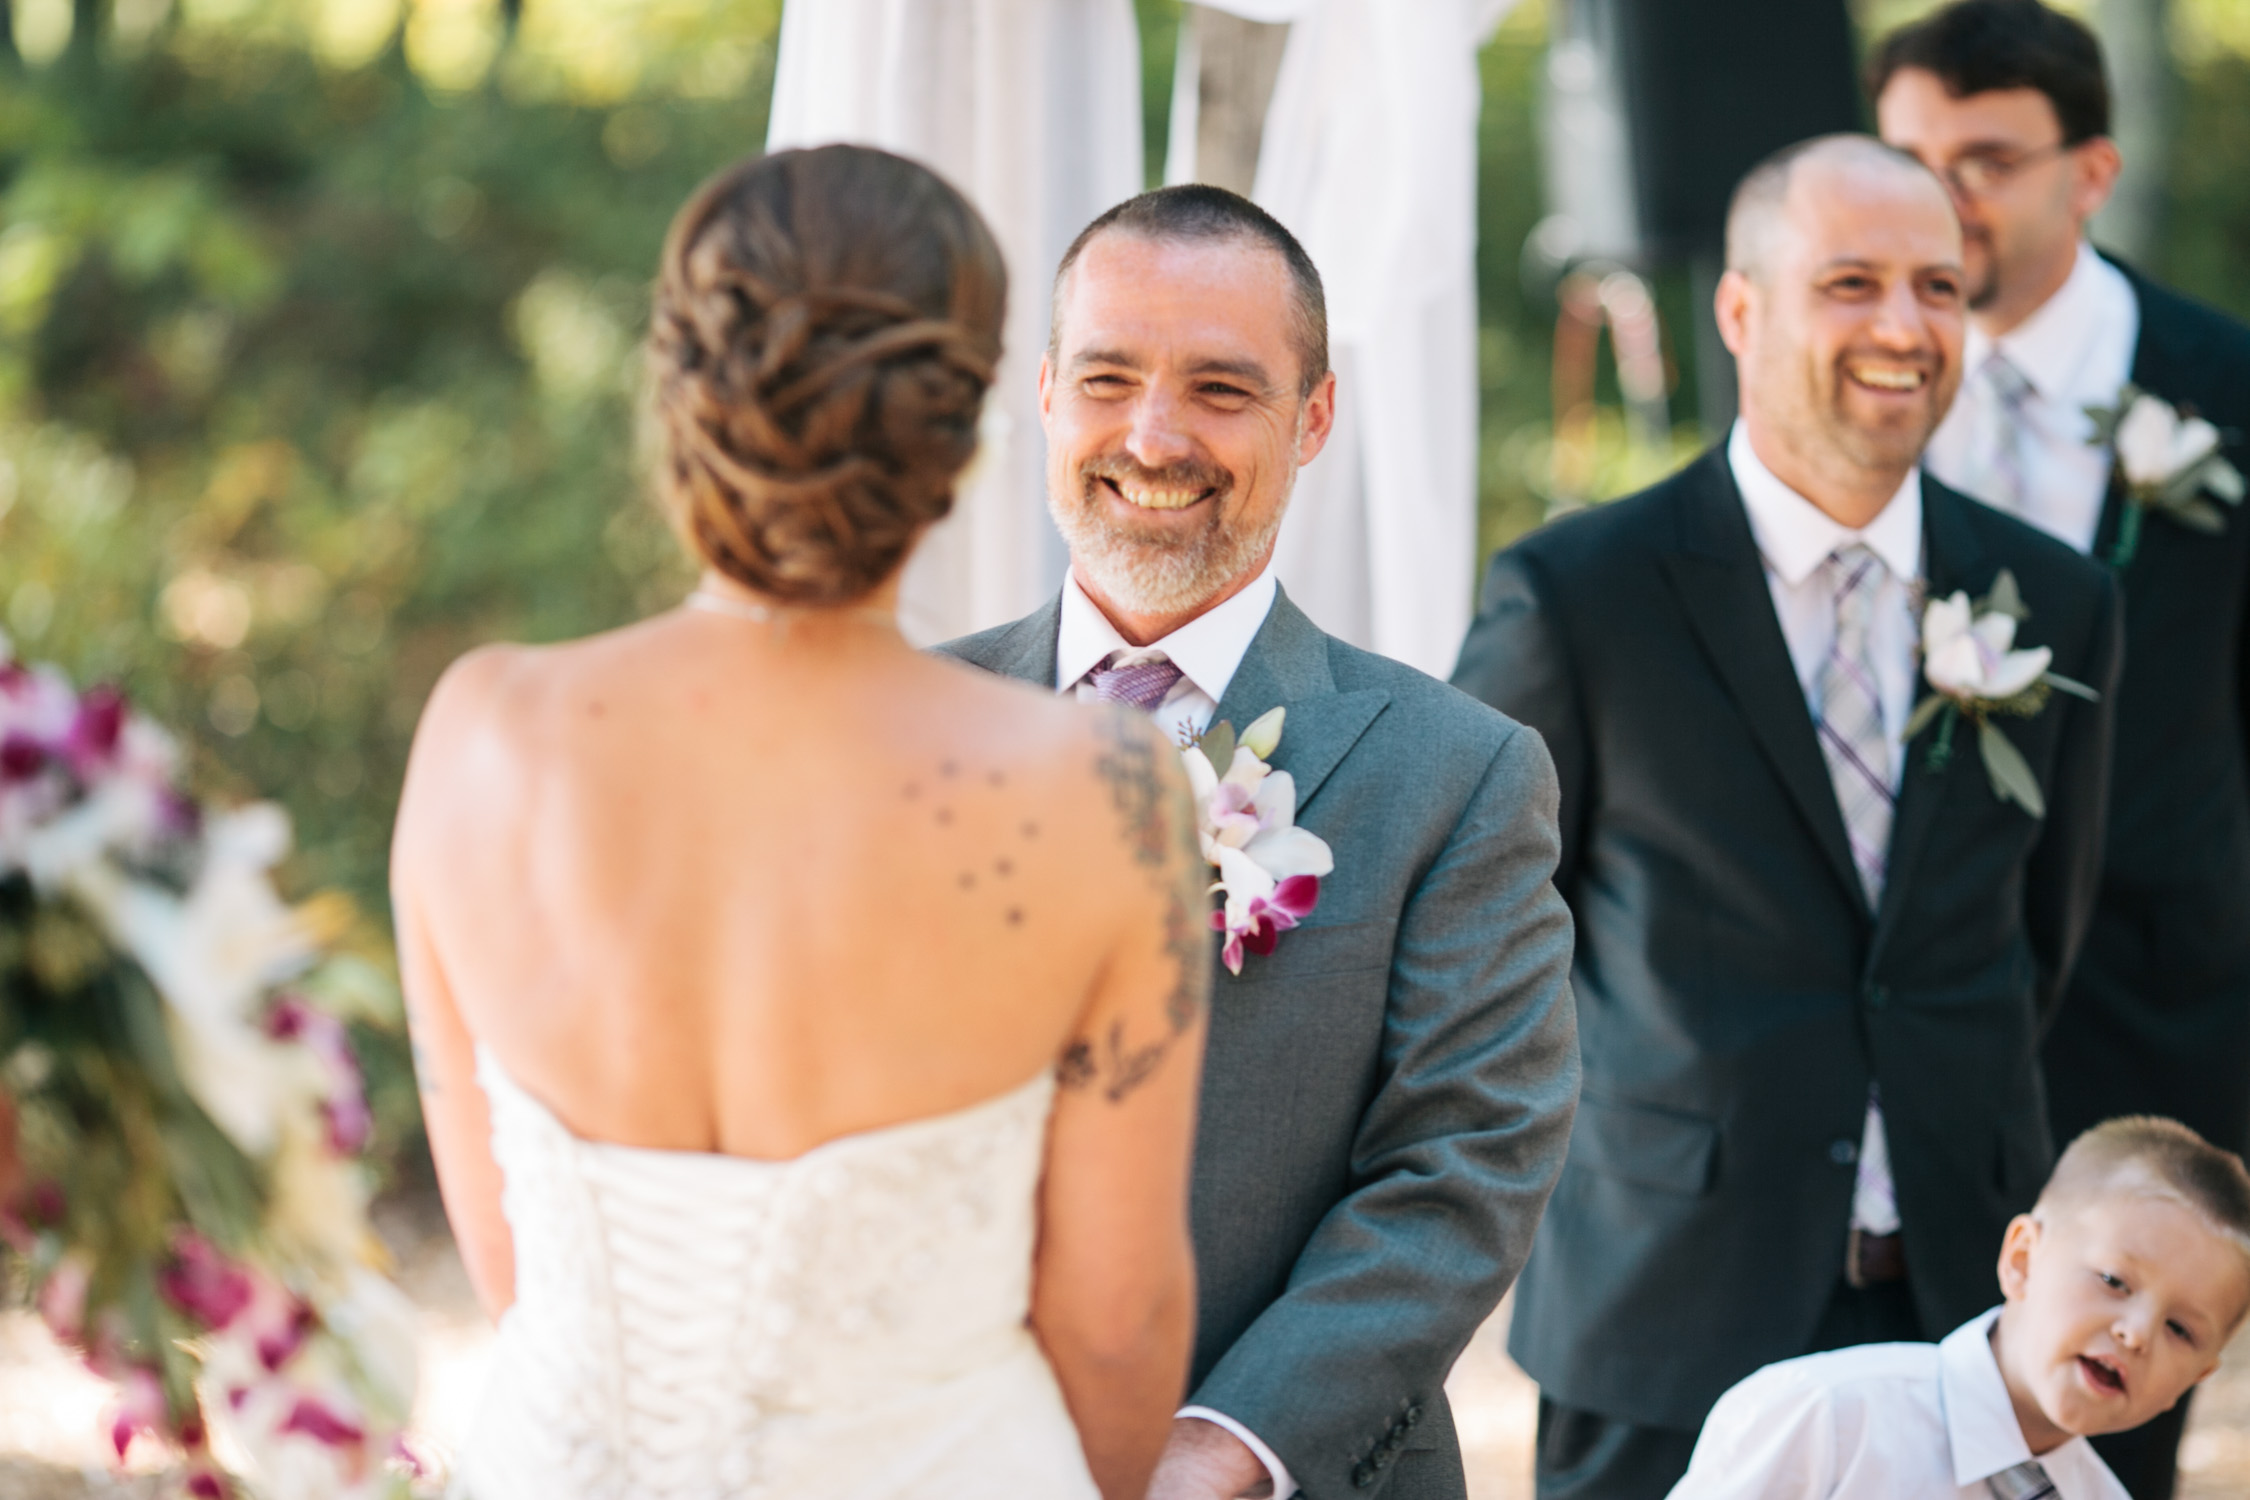 image of groom smiling at tattoo bride at wedding ceremony